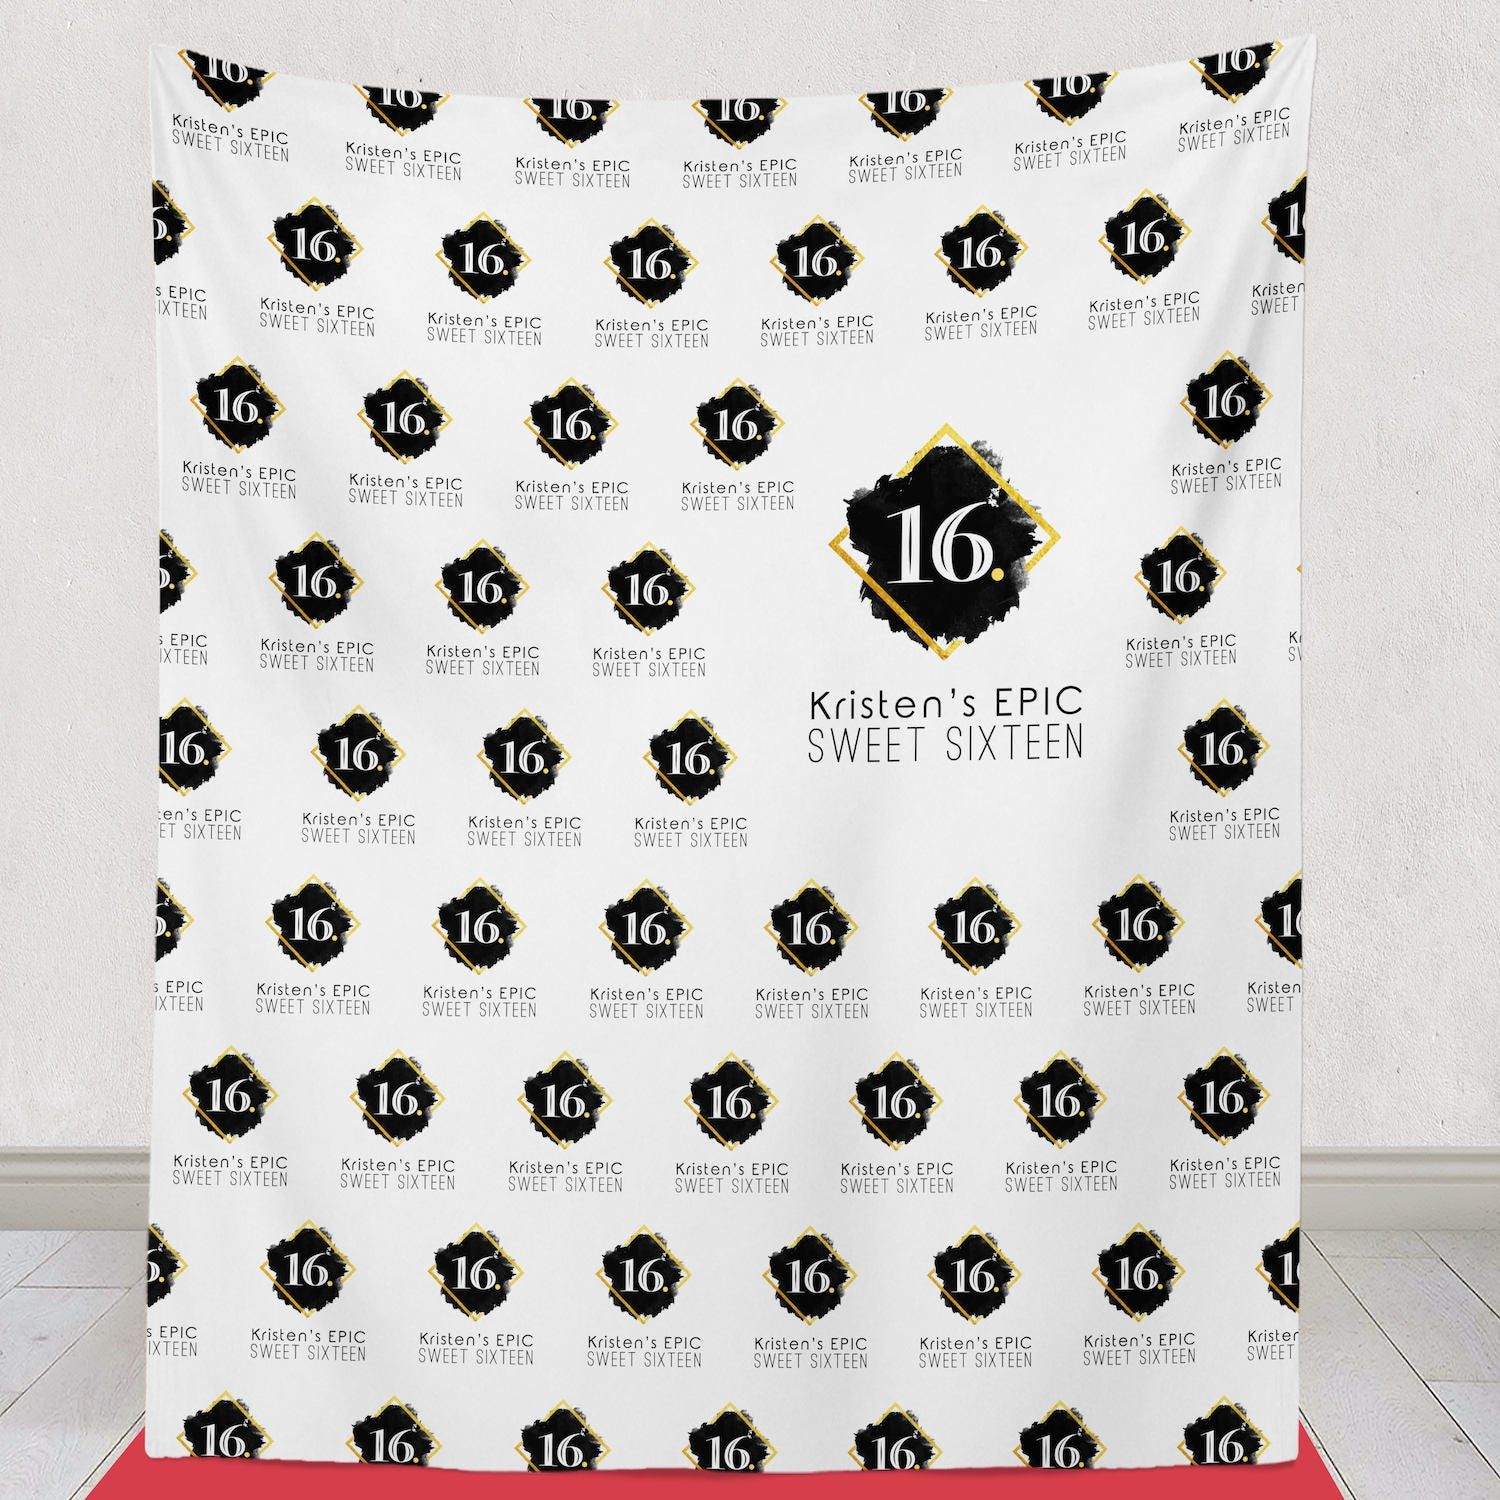 Sweet 16 Step and Repeat Backdrop Sweet 16 Party backdrop